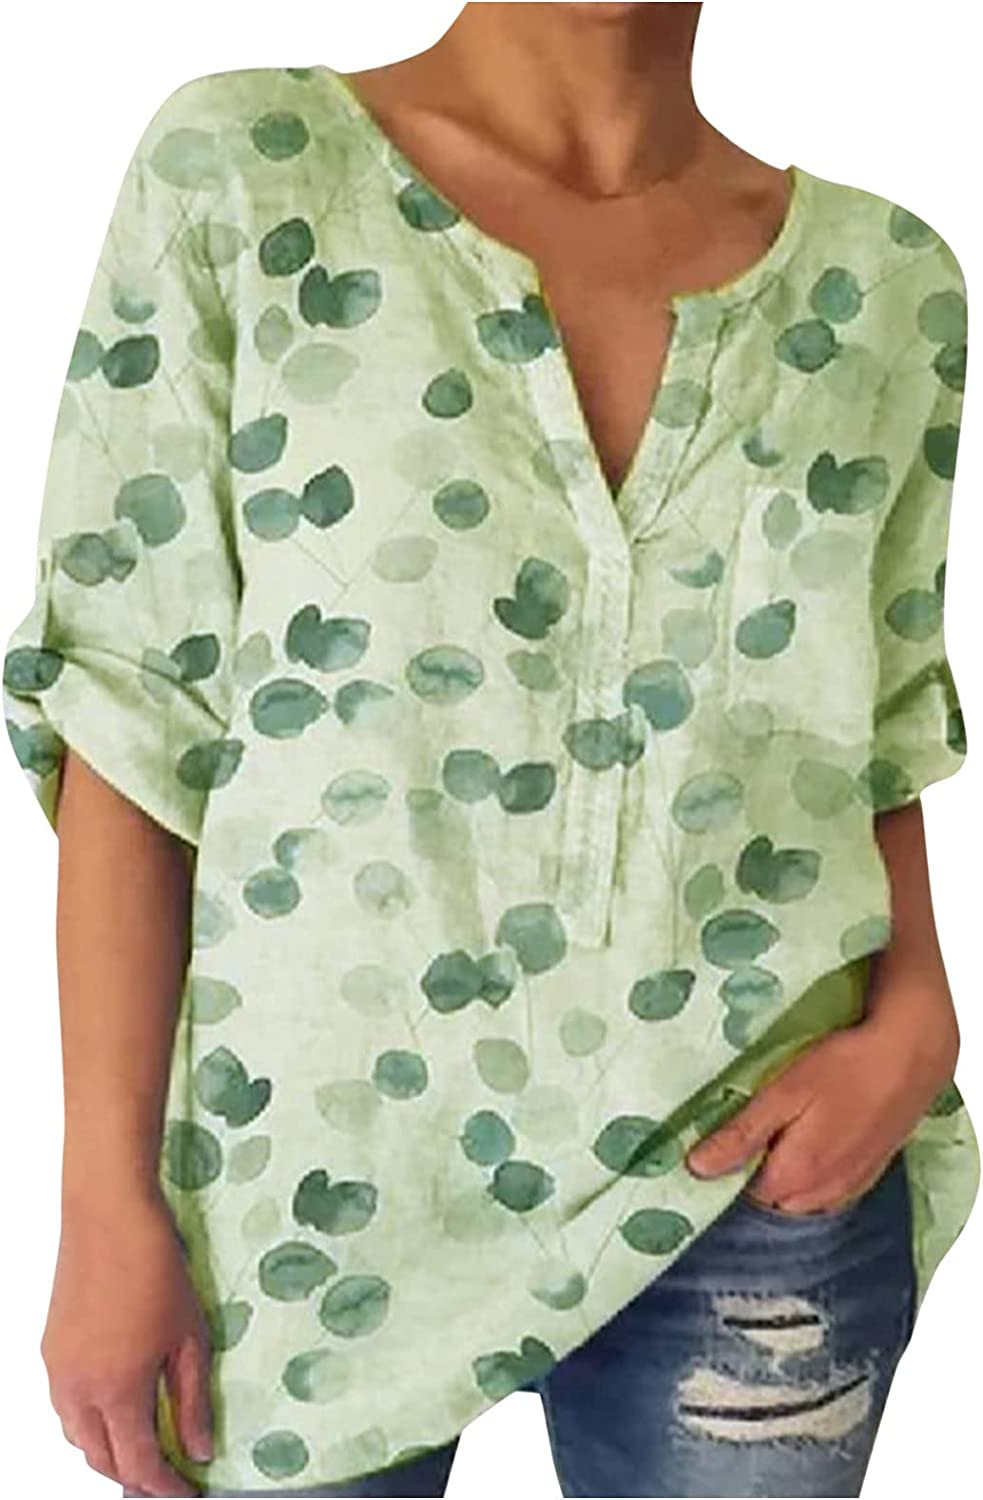 Plus Size Summer Casual Tops for Women, V Neck Short Sleeve Button Down T Shirts Retro Priting Blouses for Women